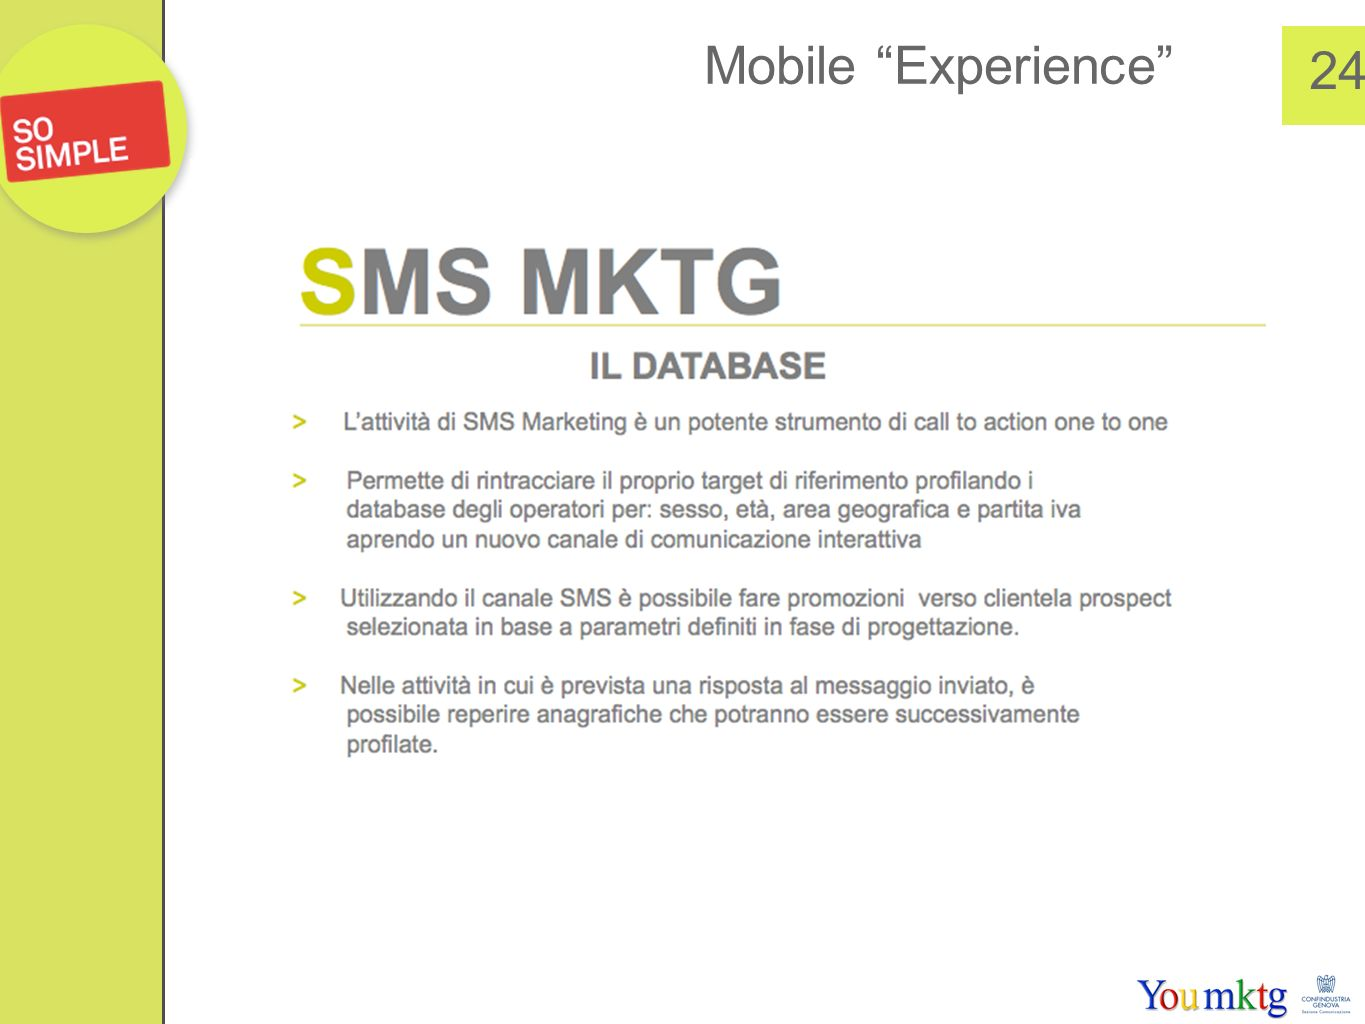 Mobile Experience 24